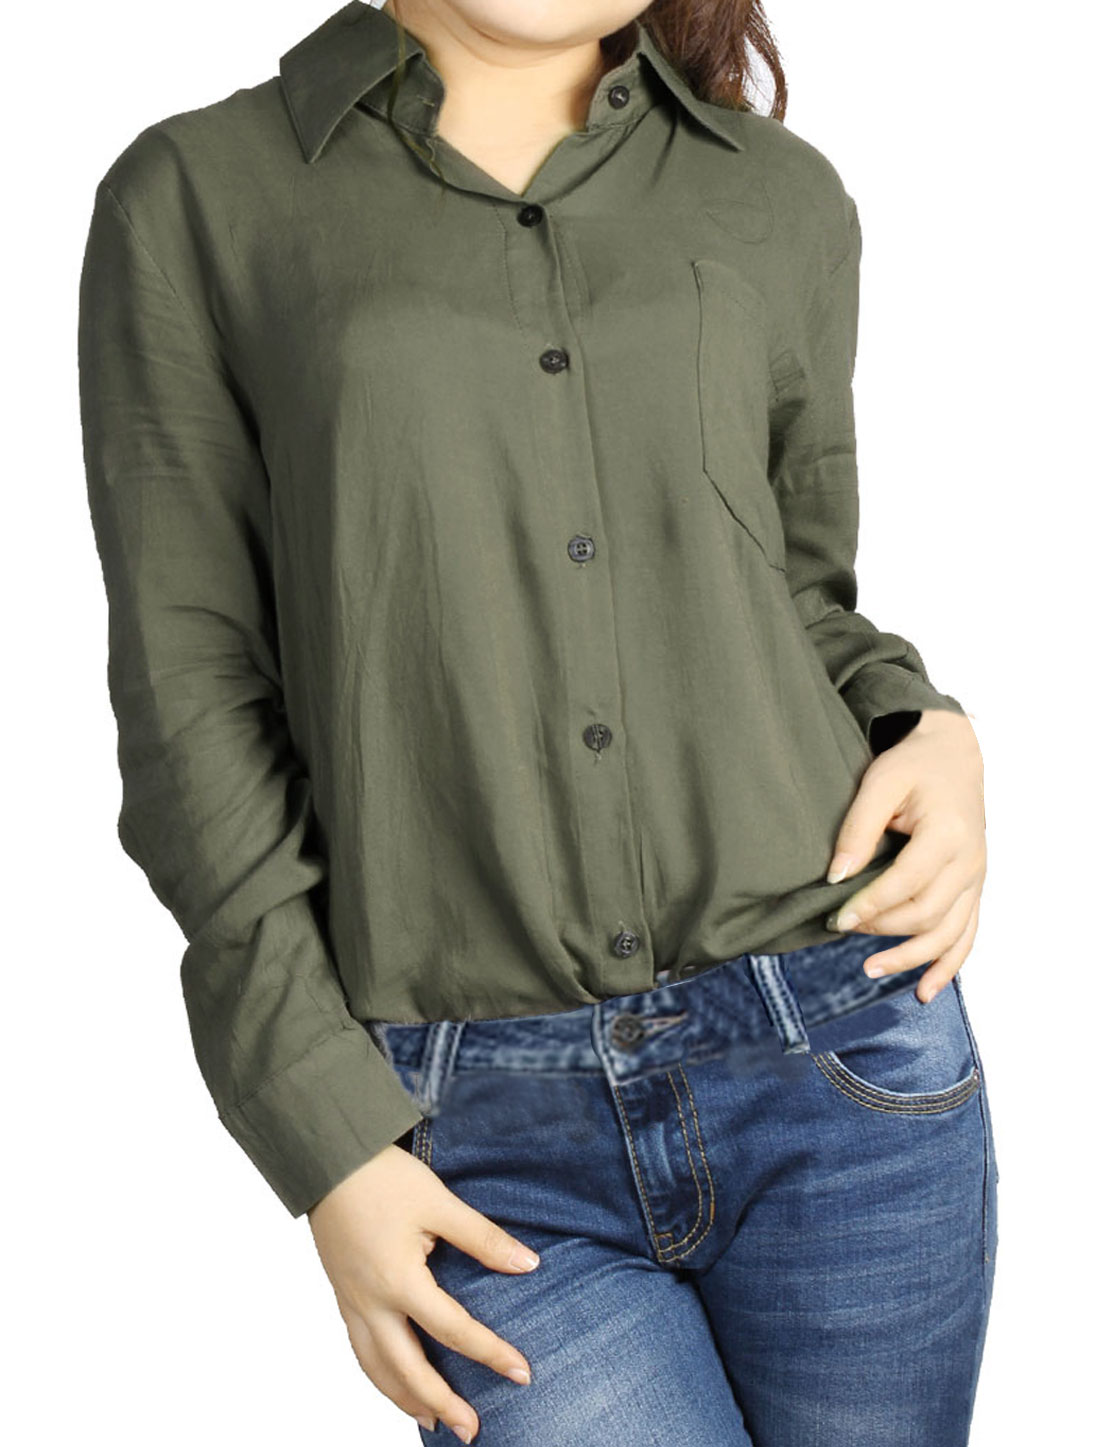 Lady Olive Green Point Collar Button Down Roll Up Sleeve Shirt S